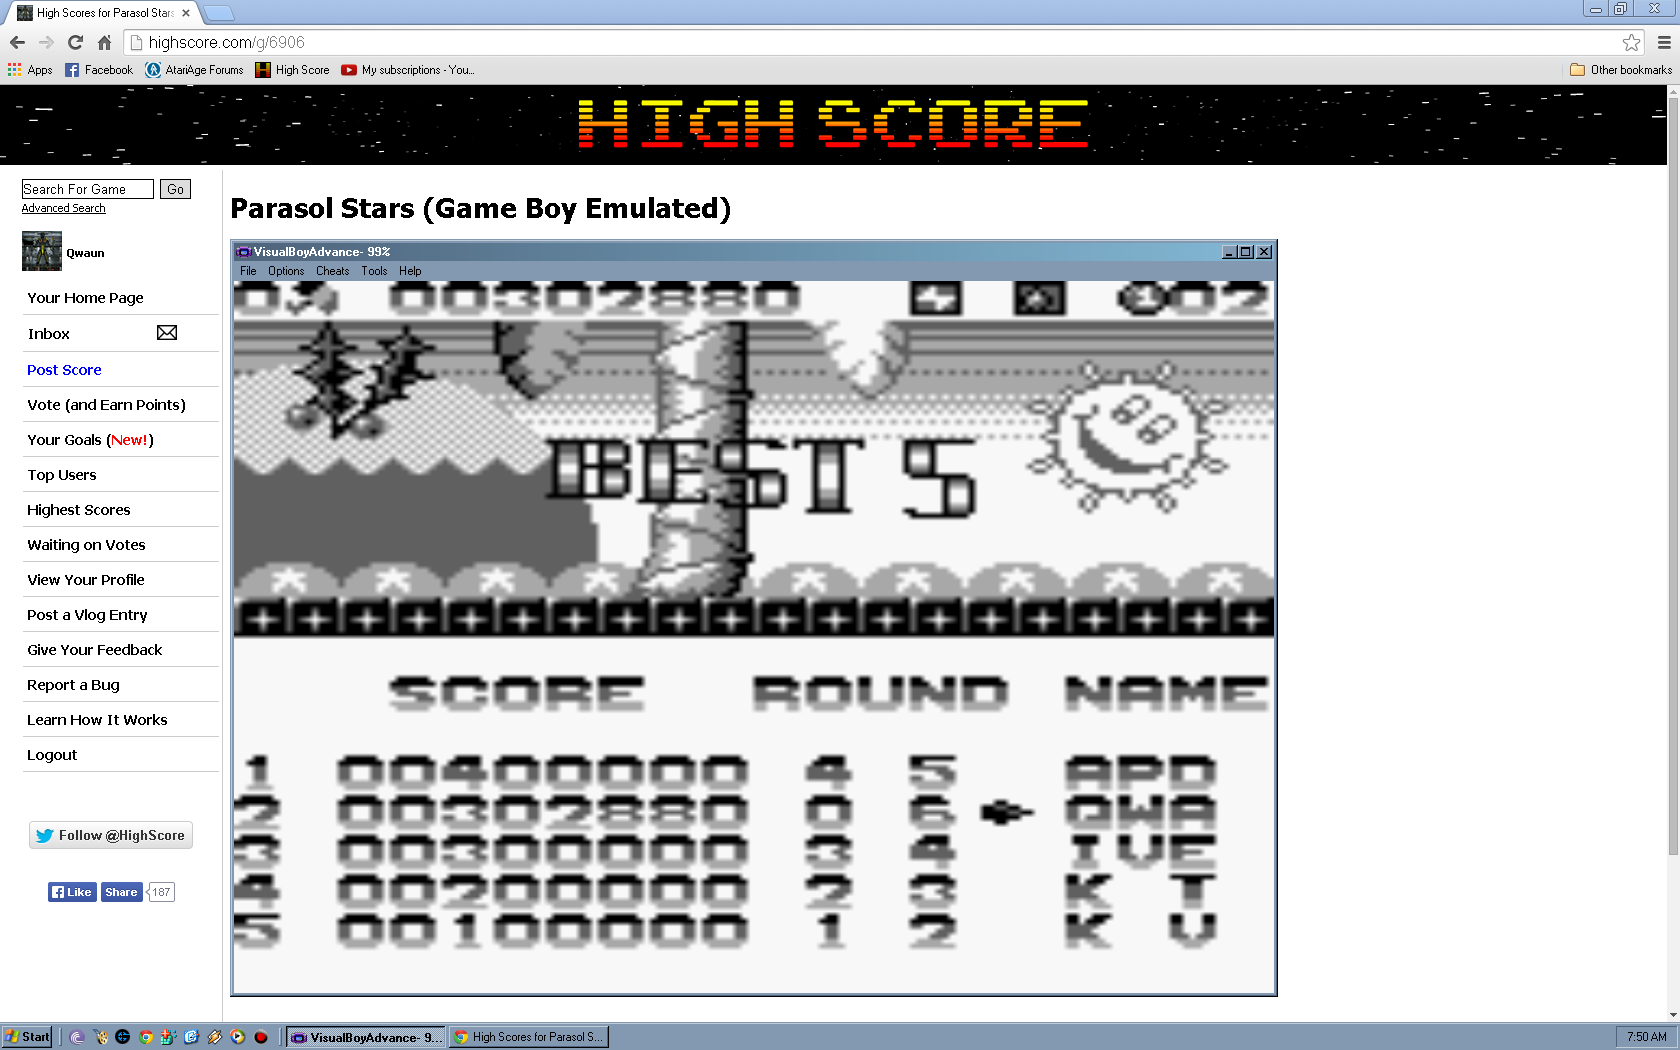 Qwaun: Parasol Stars (Game Boy Emulated) 302,880 points on 2014-05-04 09:49:53